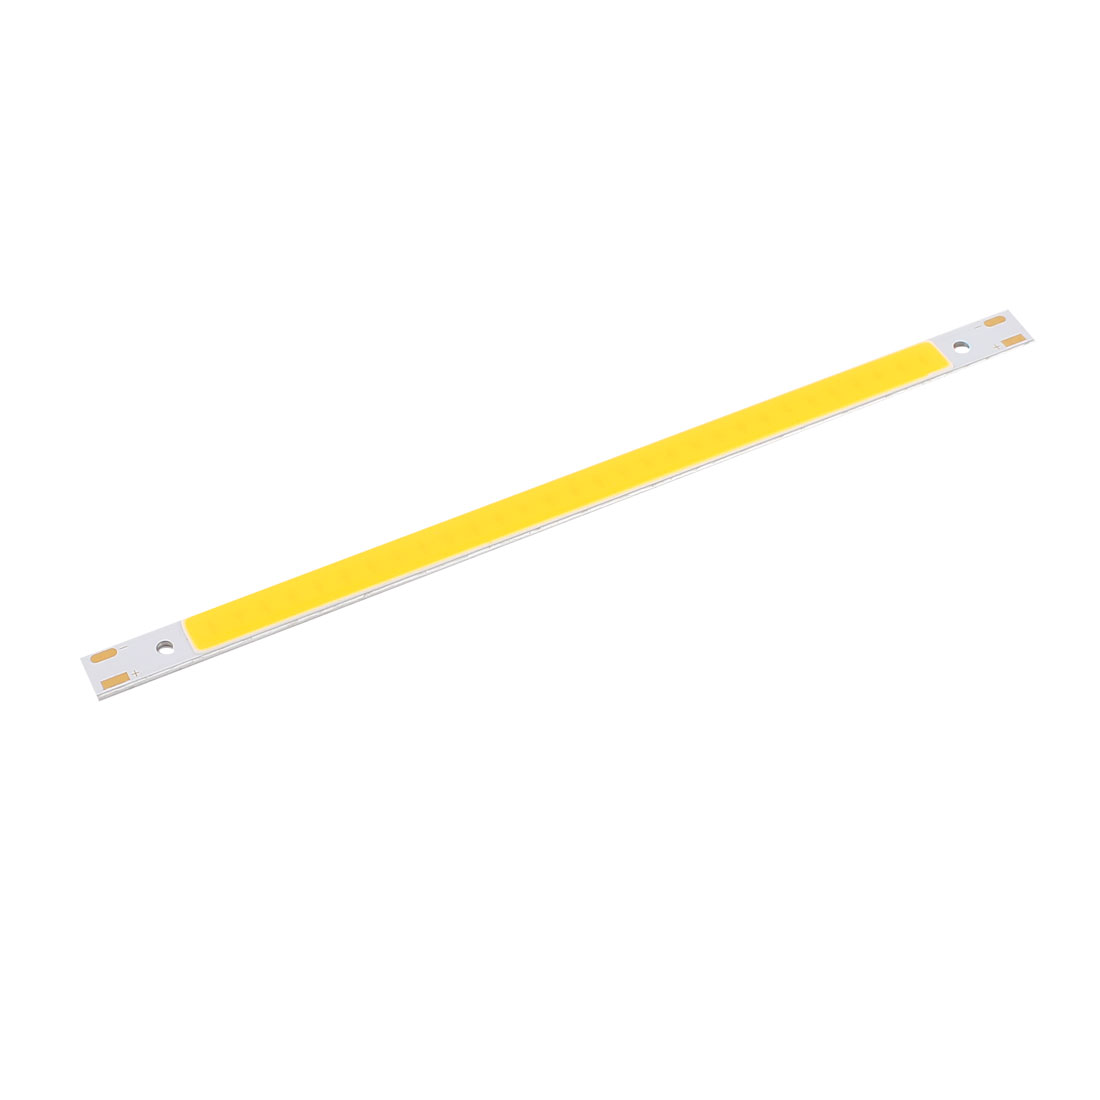 10W DC9-11V 1A 80-90LM/W Warm White LED Light COB Lamp Beads Chip